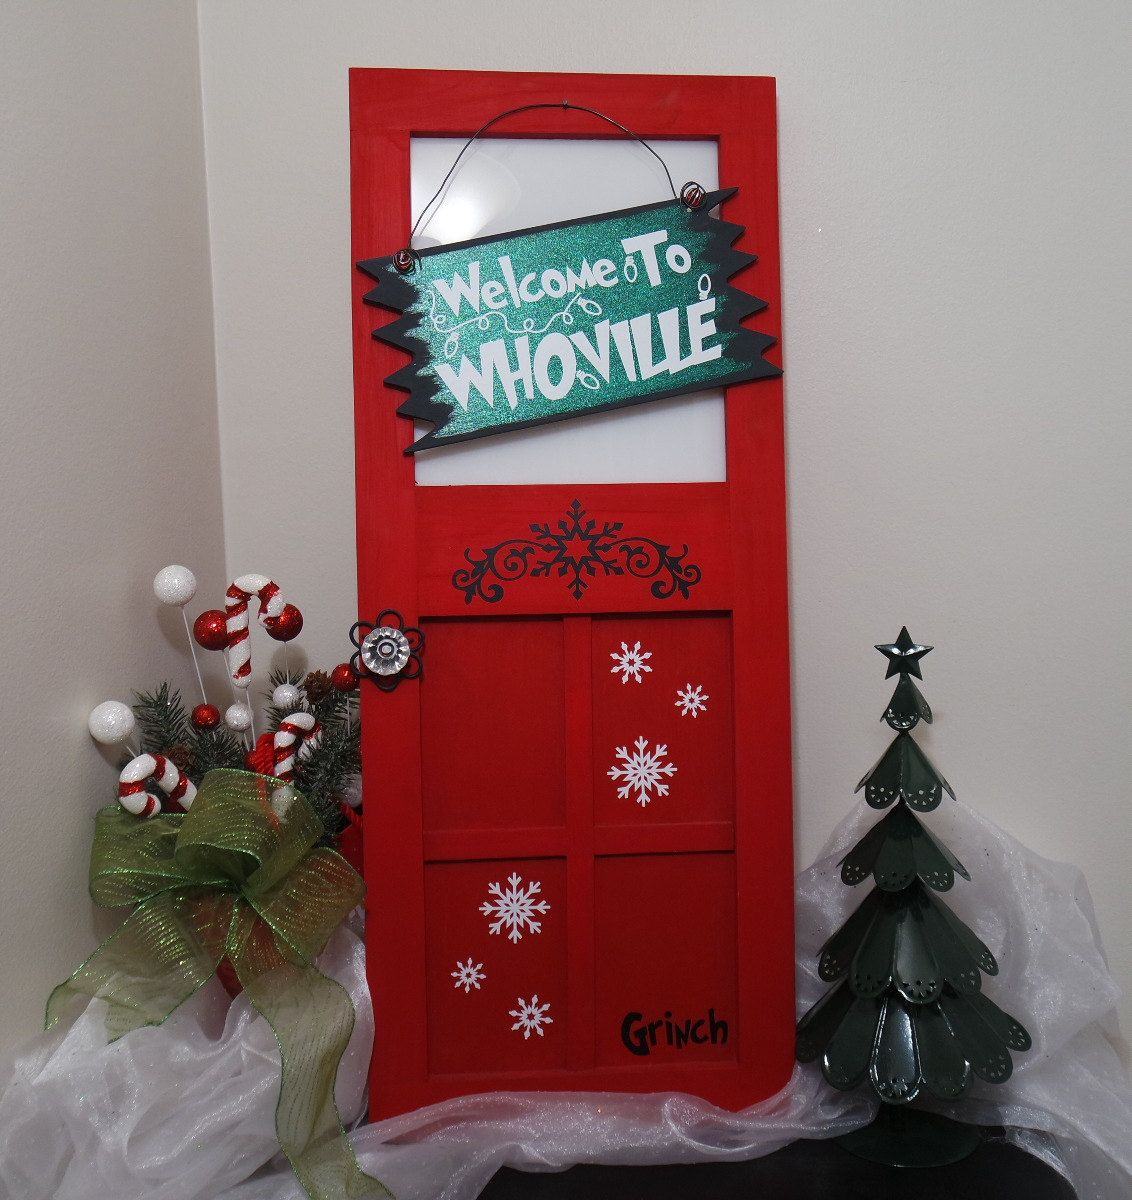 Pin by Rita Bidwell on whoville | Grinch christmas ...